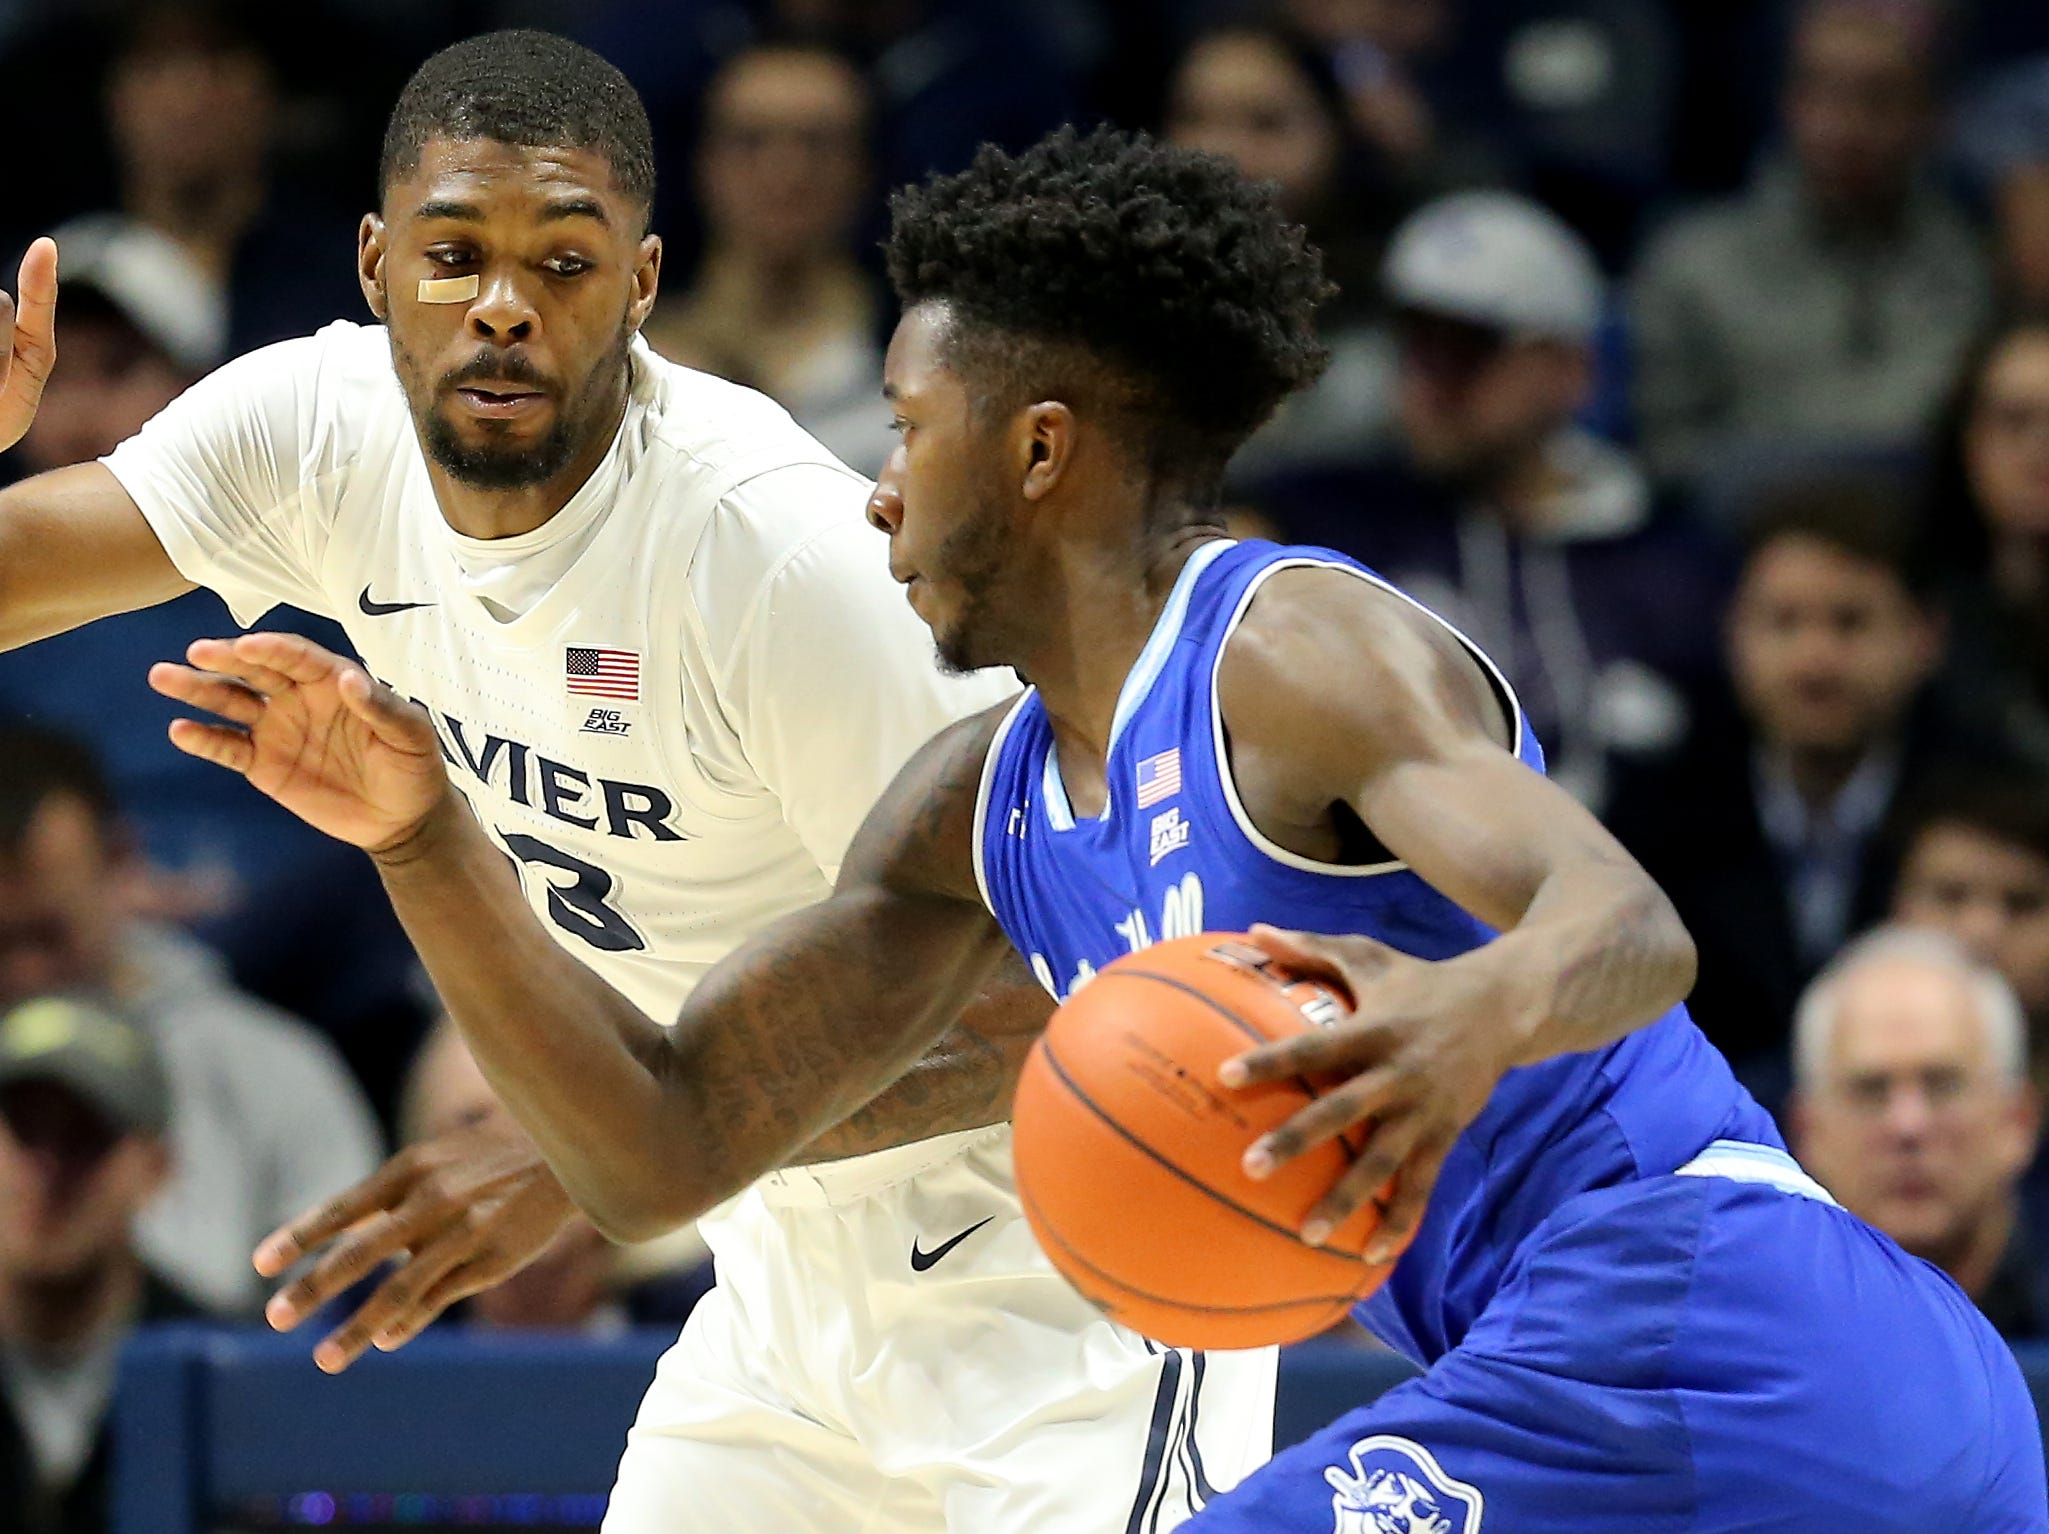 Xavier Musketeers forward Naji Marshall (13) defends in the first half of an NCAA college basketball game against the Seton Hall Pirates, Wednesday, Jan. 2, 2019, at the Cintas Center in Cincinnati.